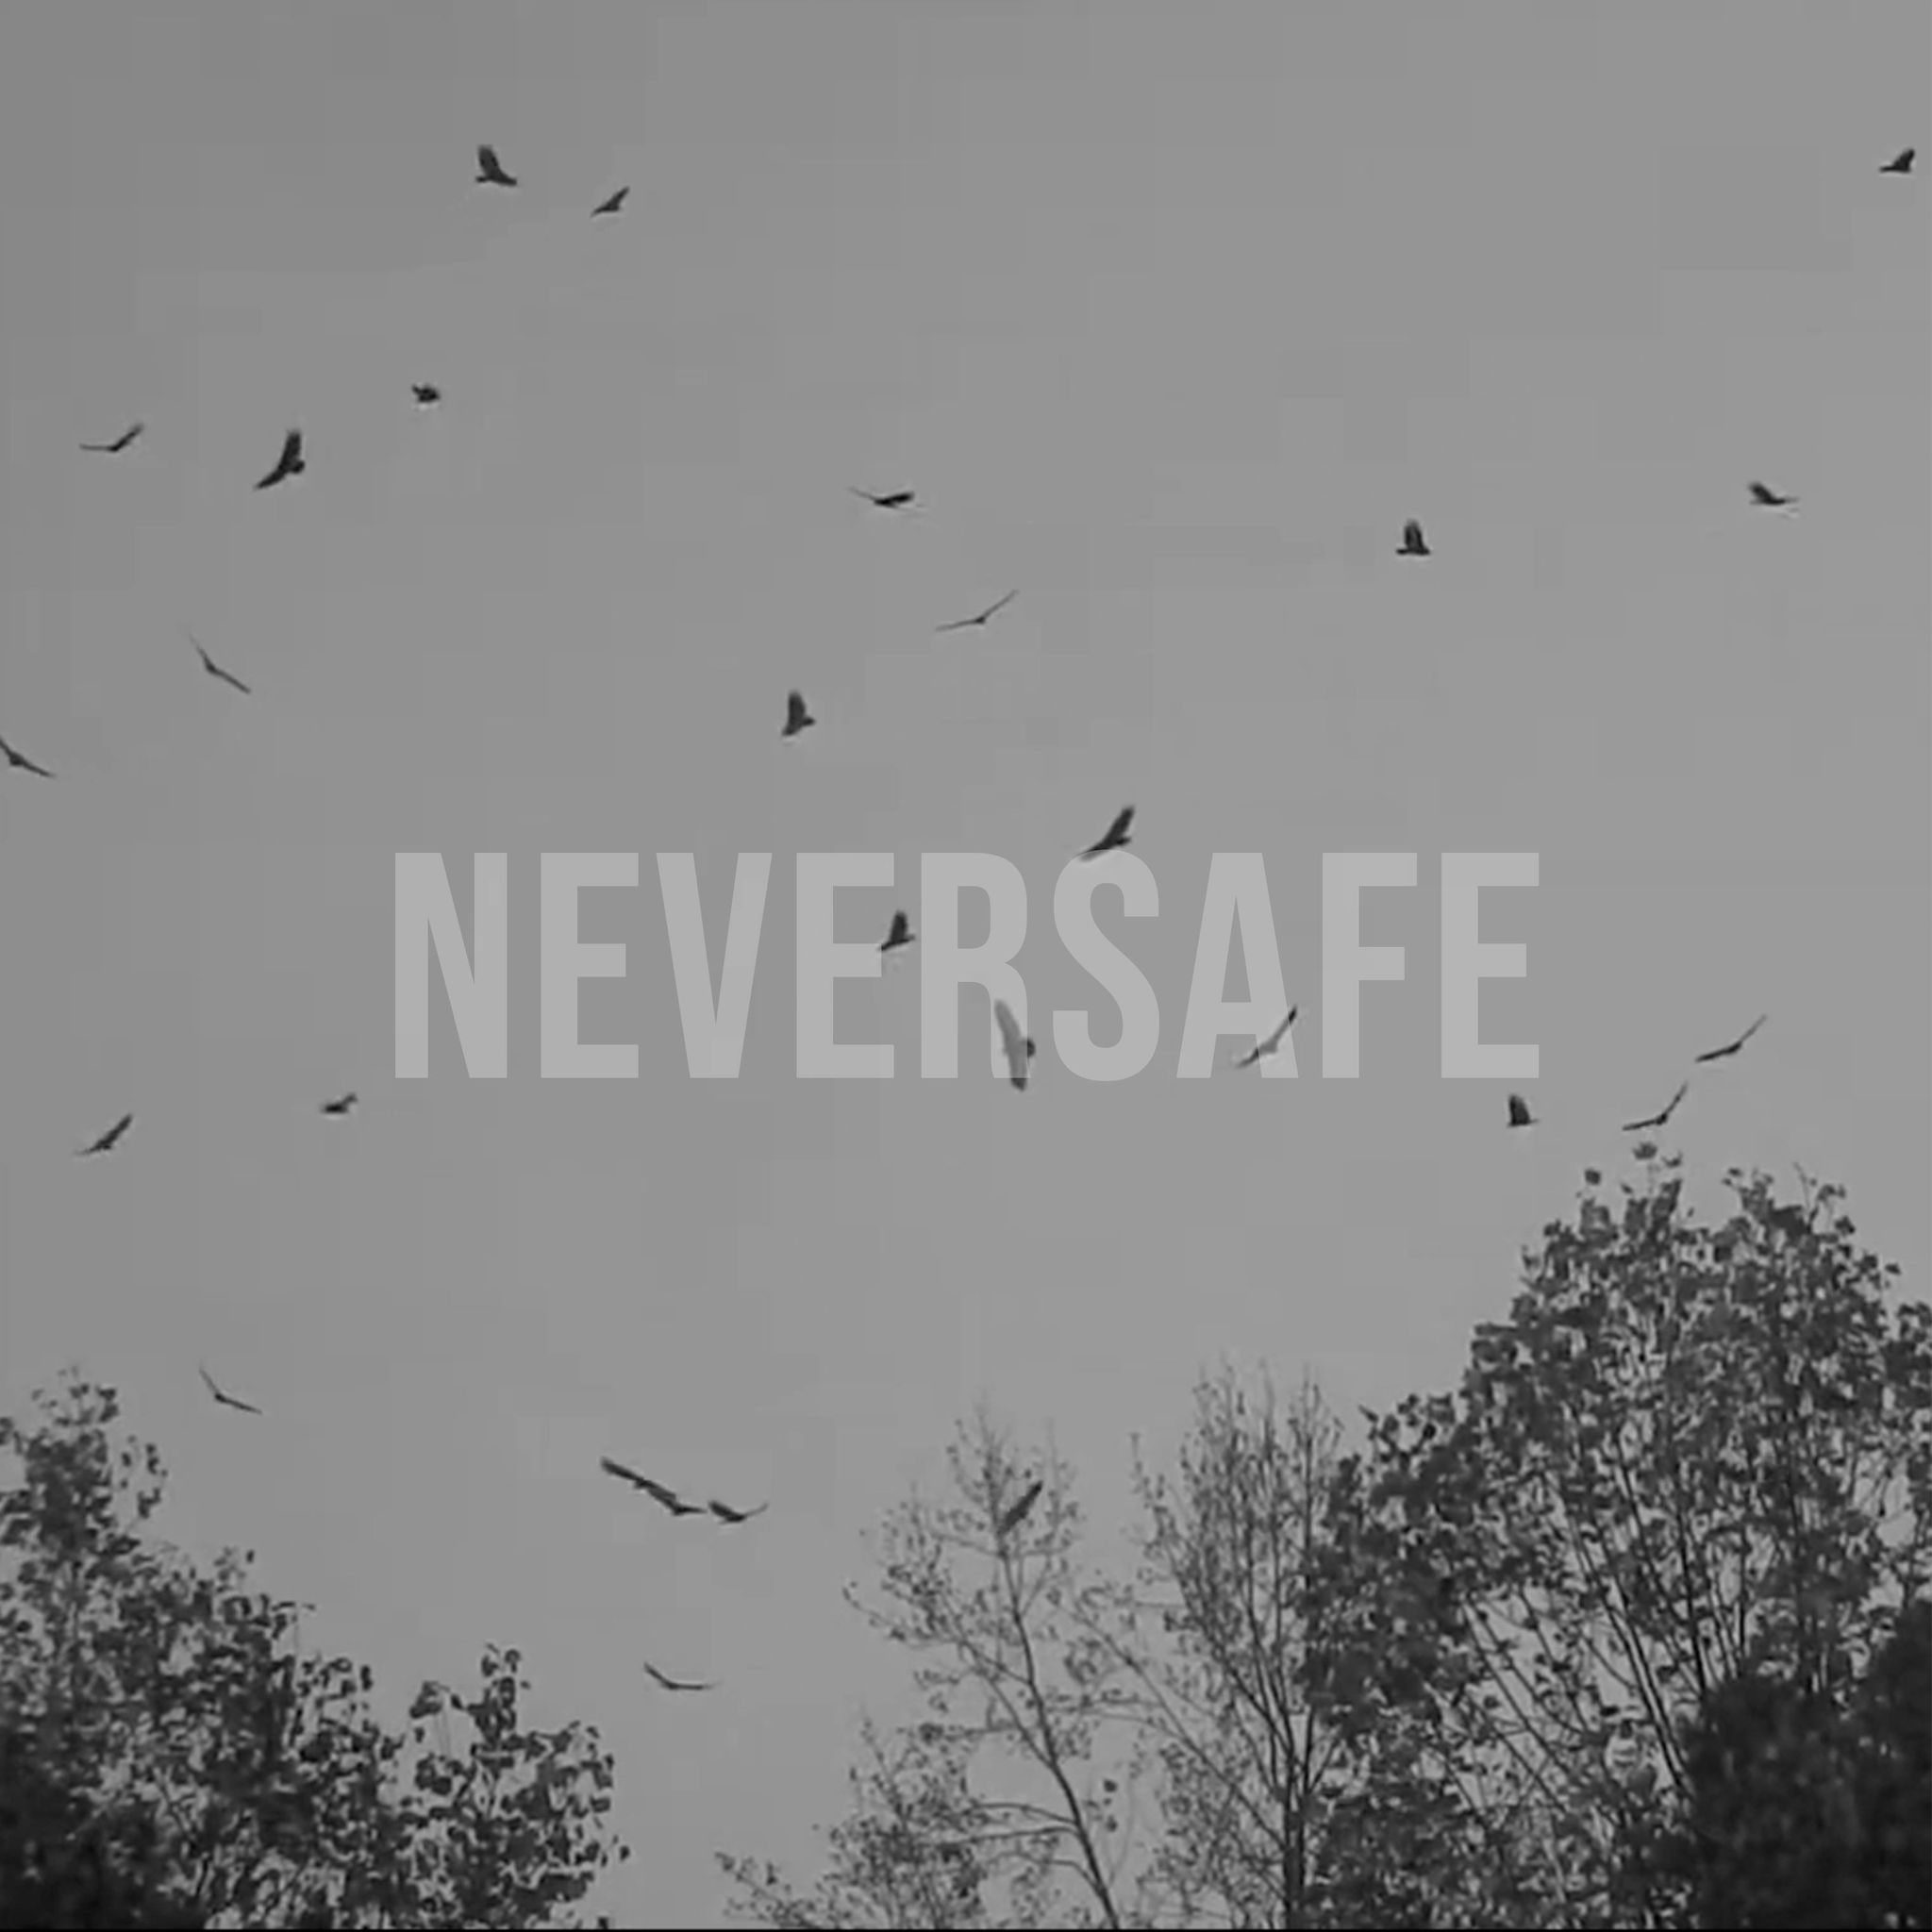 I See Vultures and 'Neversafe'